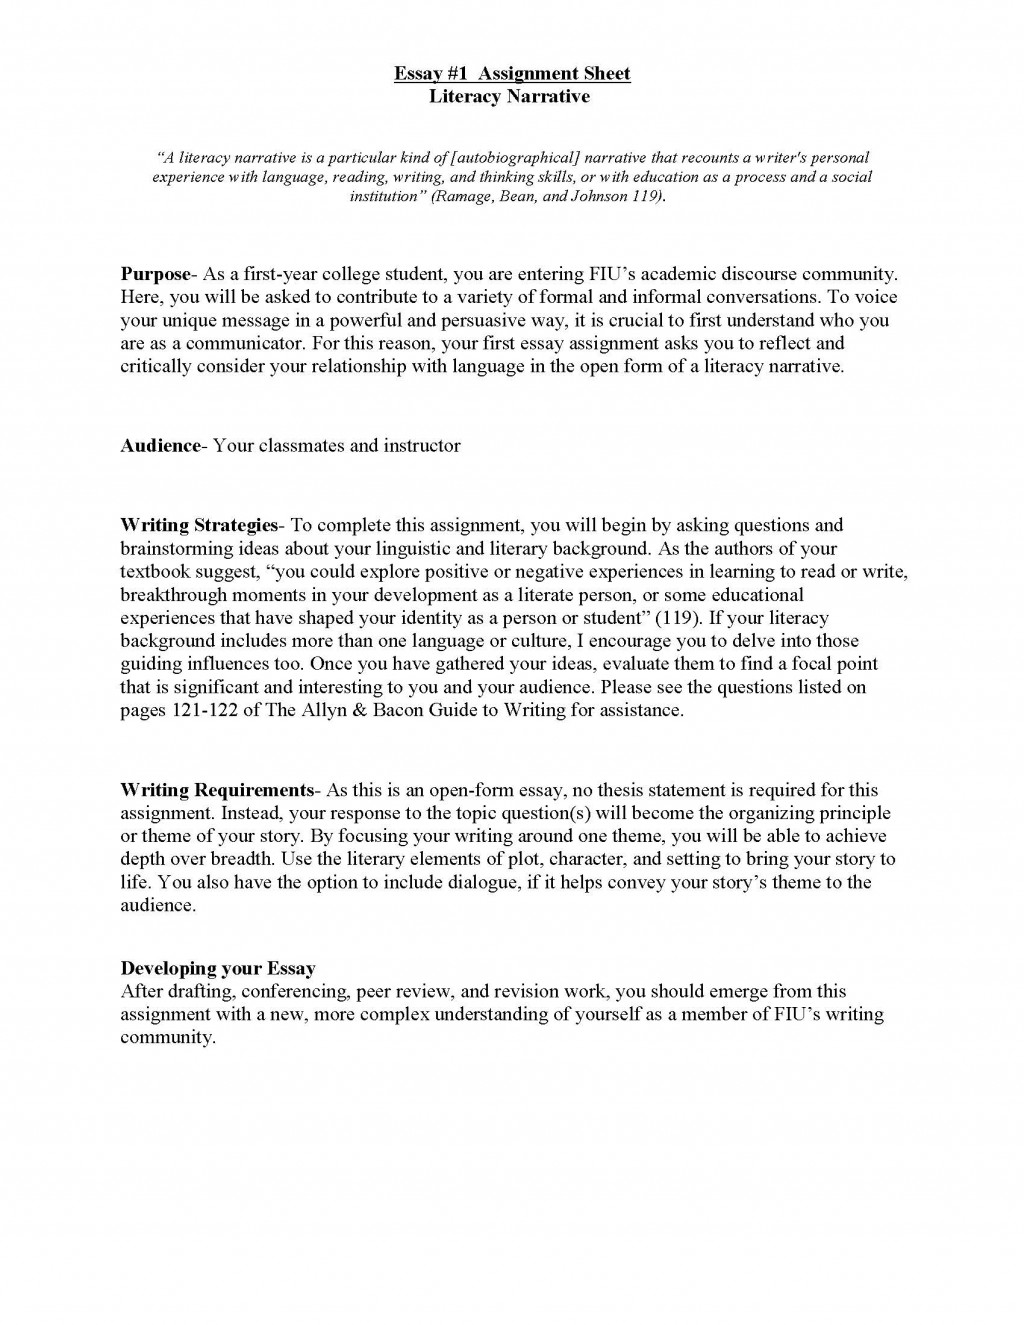 010 Essay Example Examples Of Narrative Literacy Unit Assignment Spring 2012 Page 1 Fascinating A Short About Yourself In Third Person Pdf Large